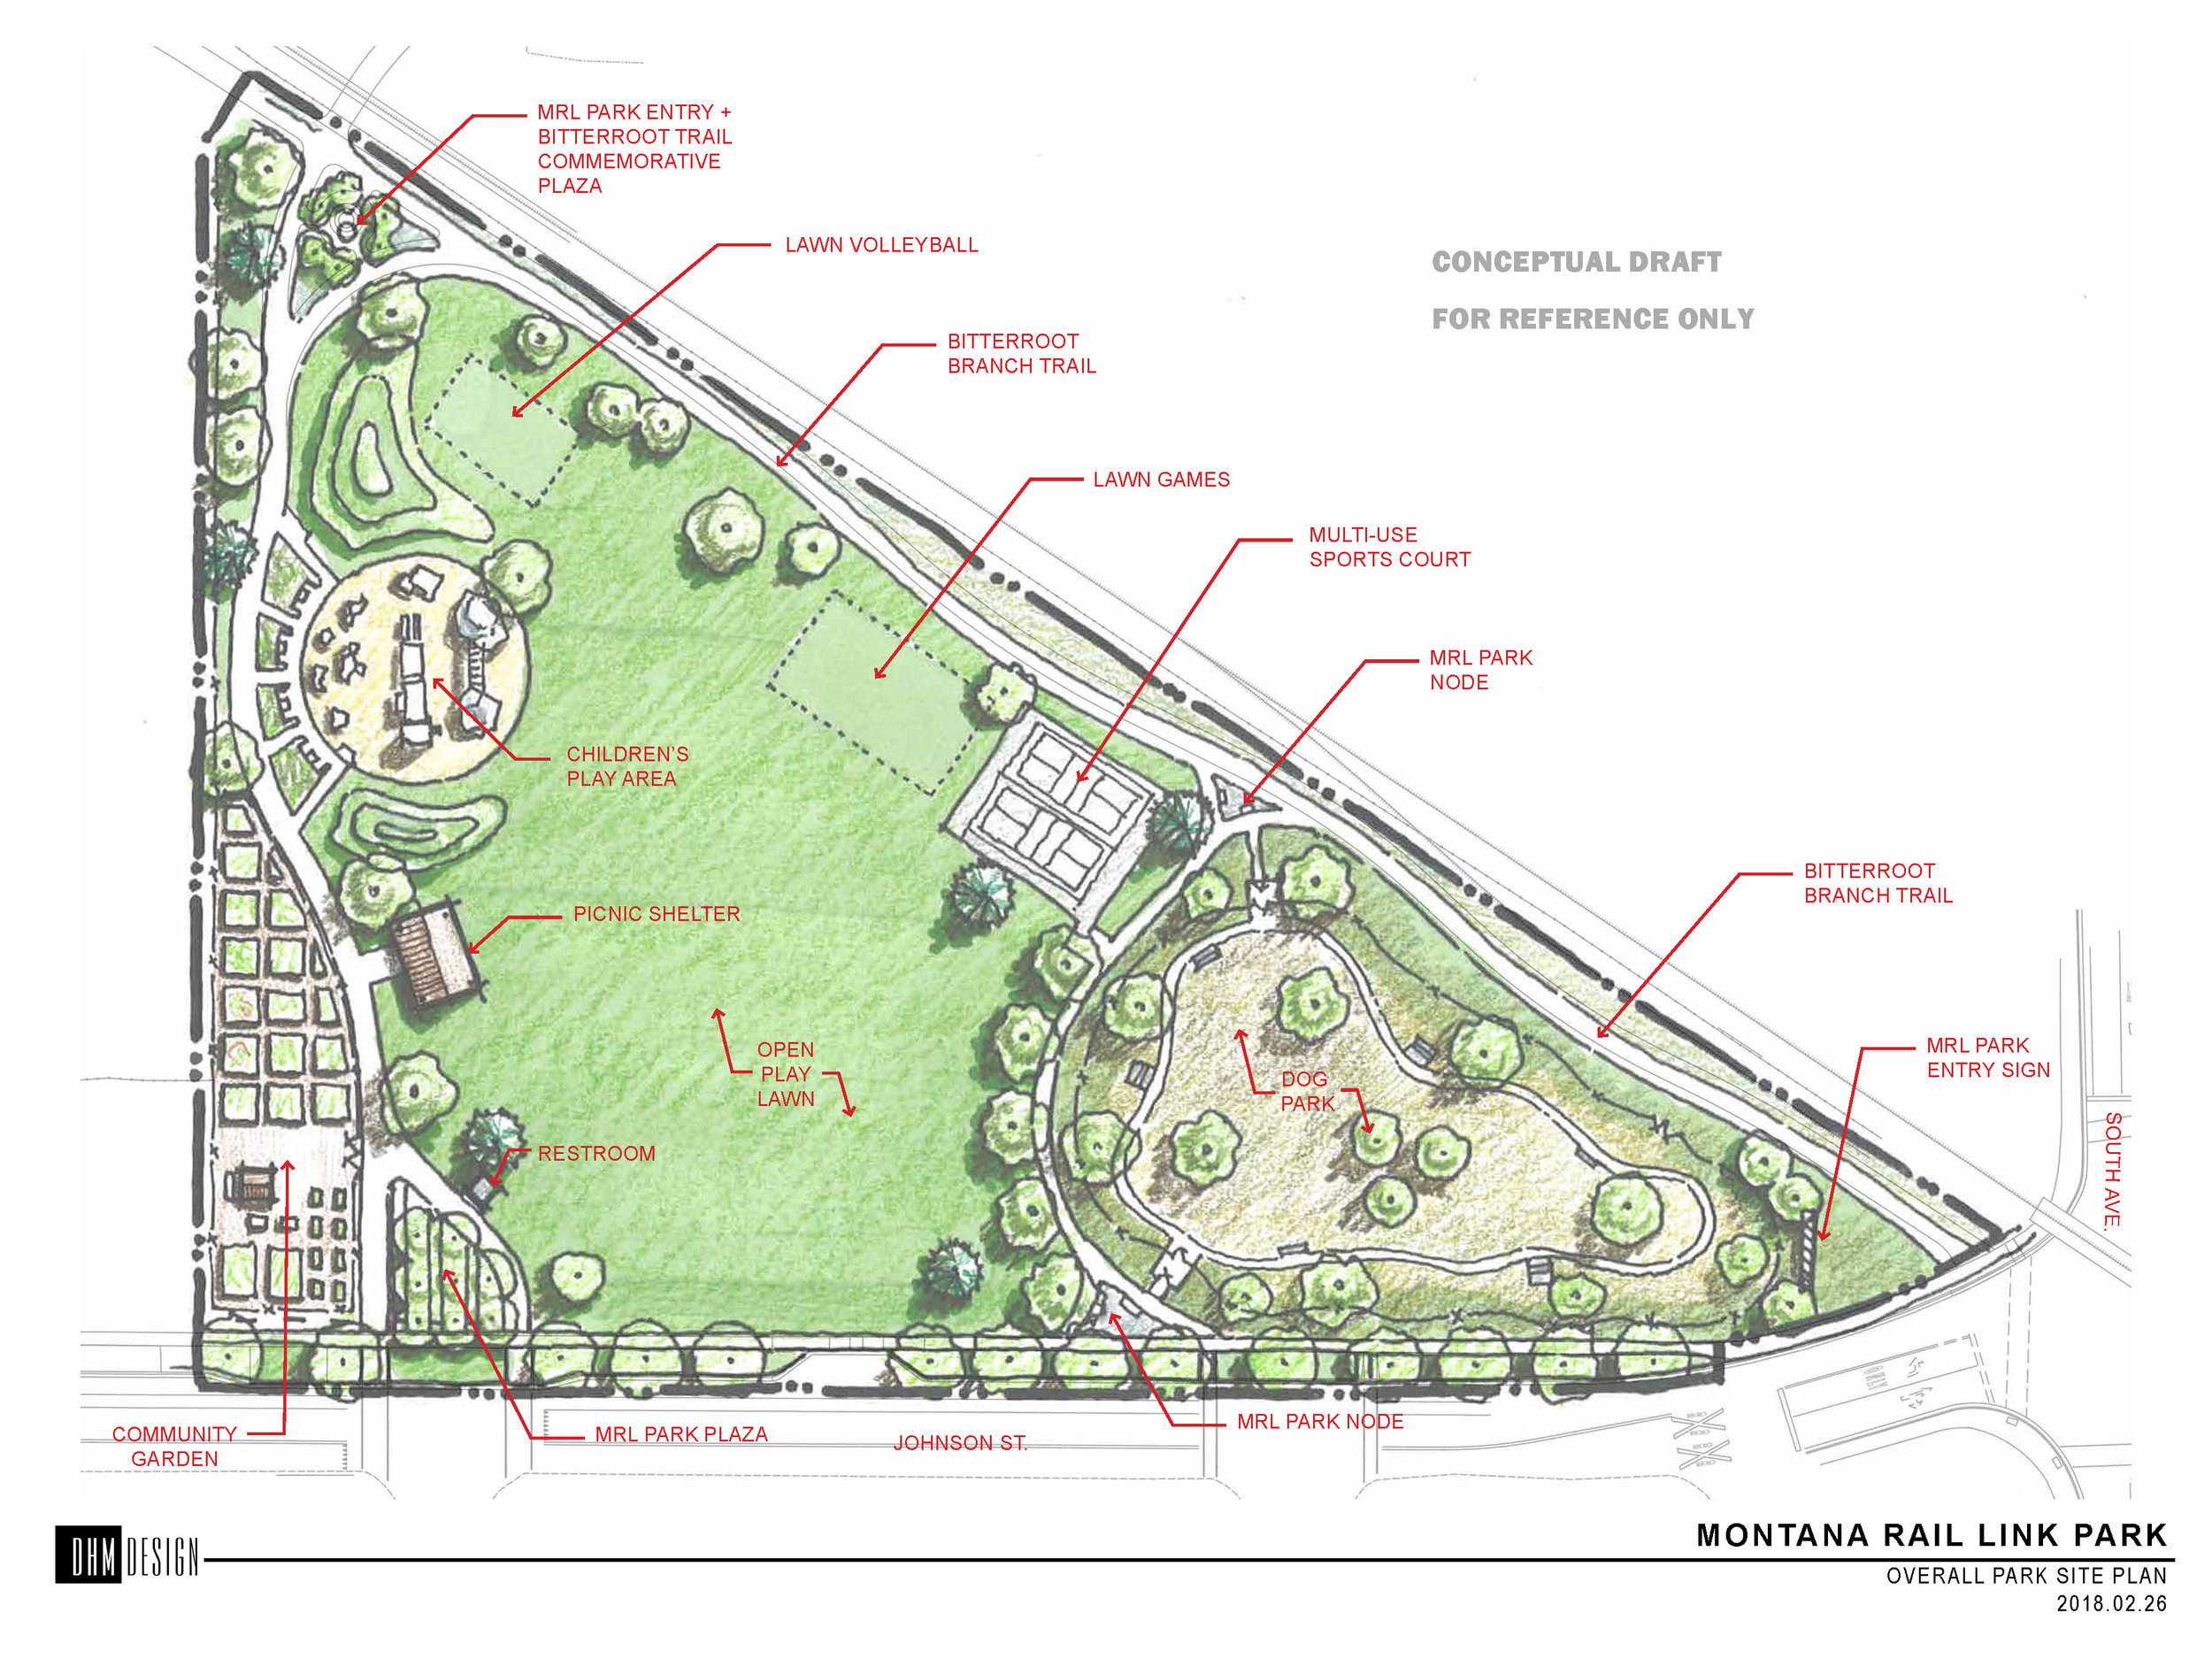 About 40 neighborhood residents joined the Park Design Workshop in 2017 to help design the new park. The workshop allowed residents to share their long-range vision for the new park, which included a community garden!